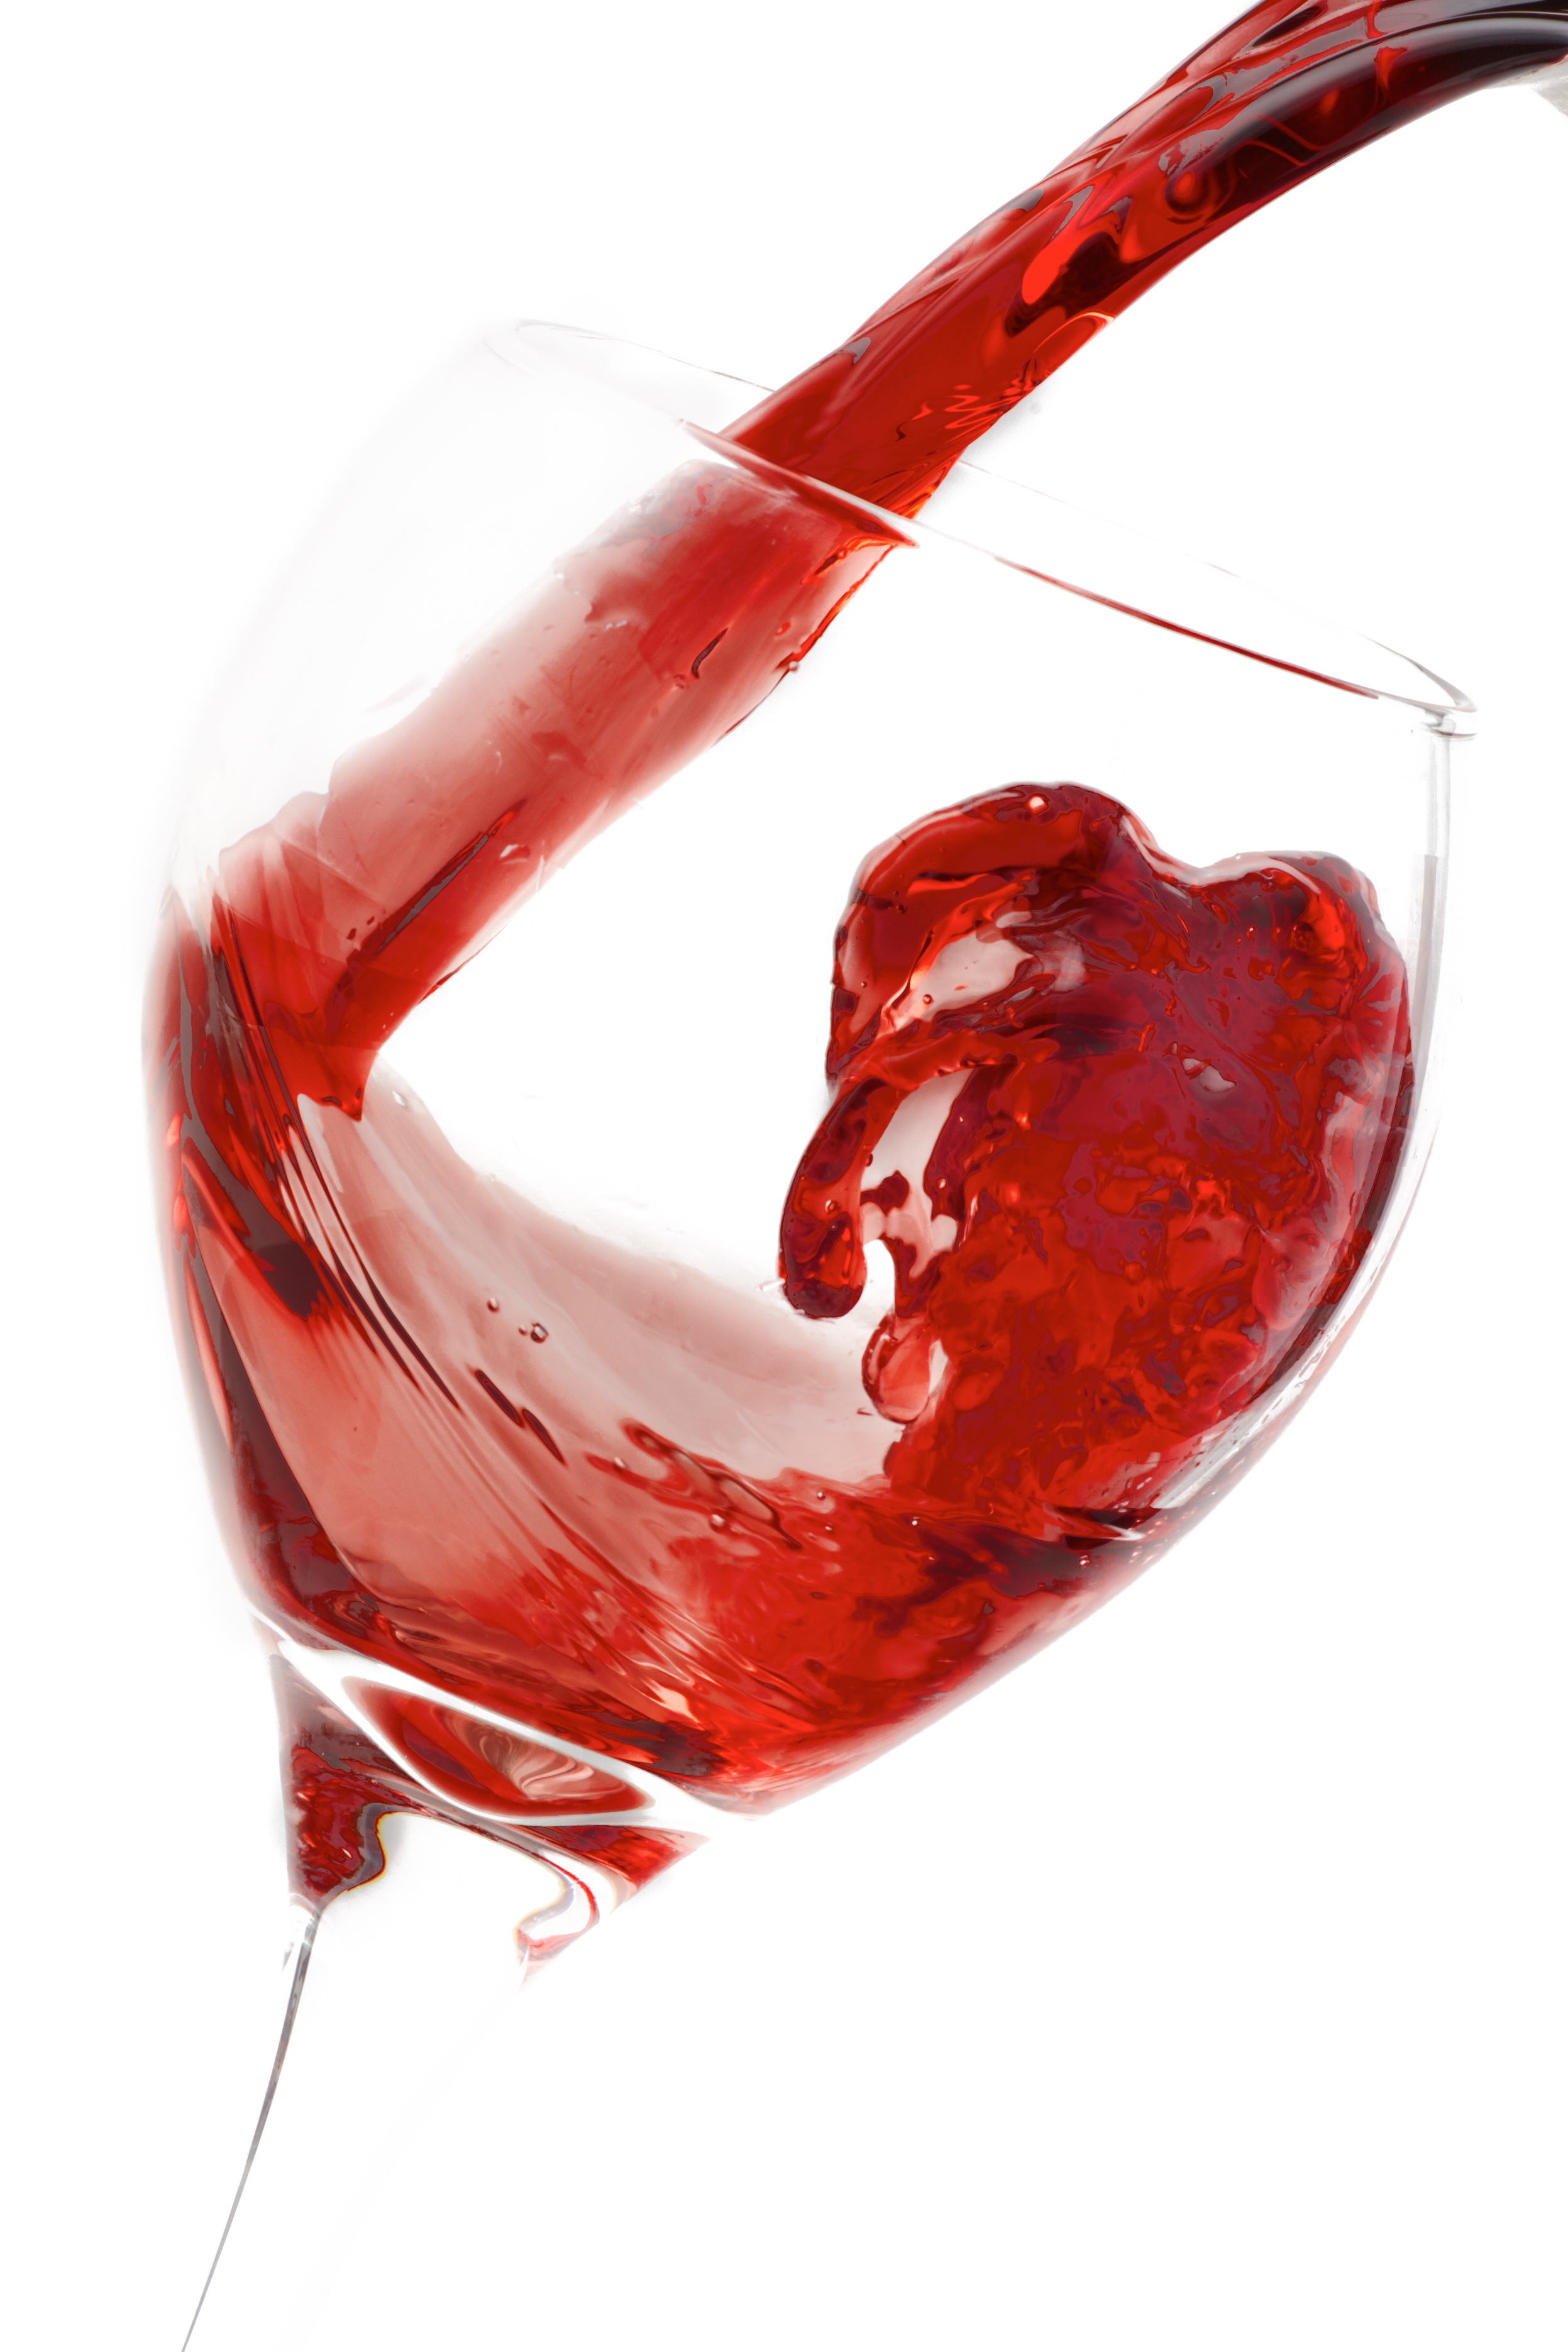 Professional commercial photograph of red wine being served on a cup on a white background.